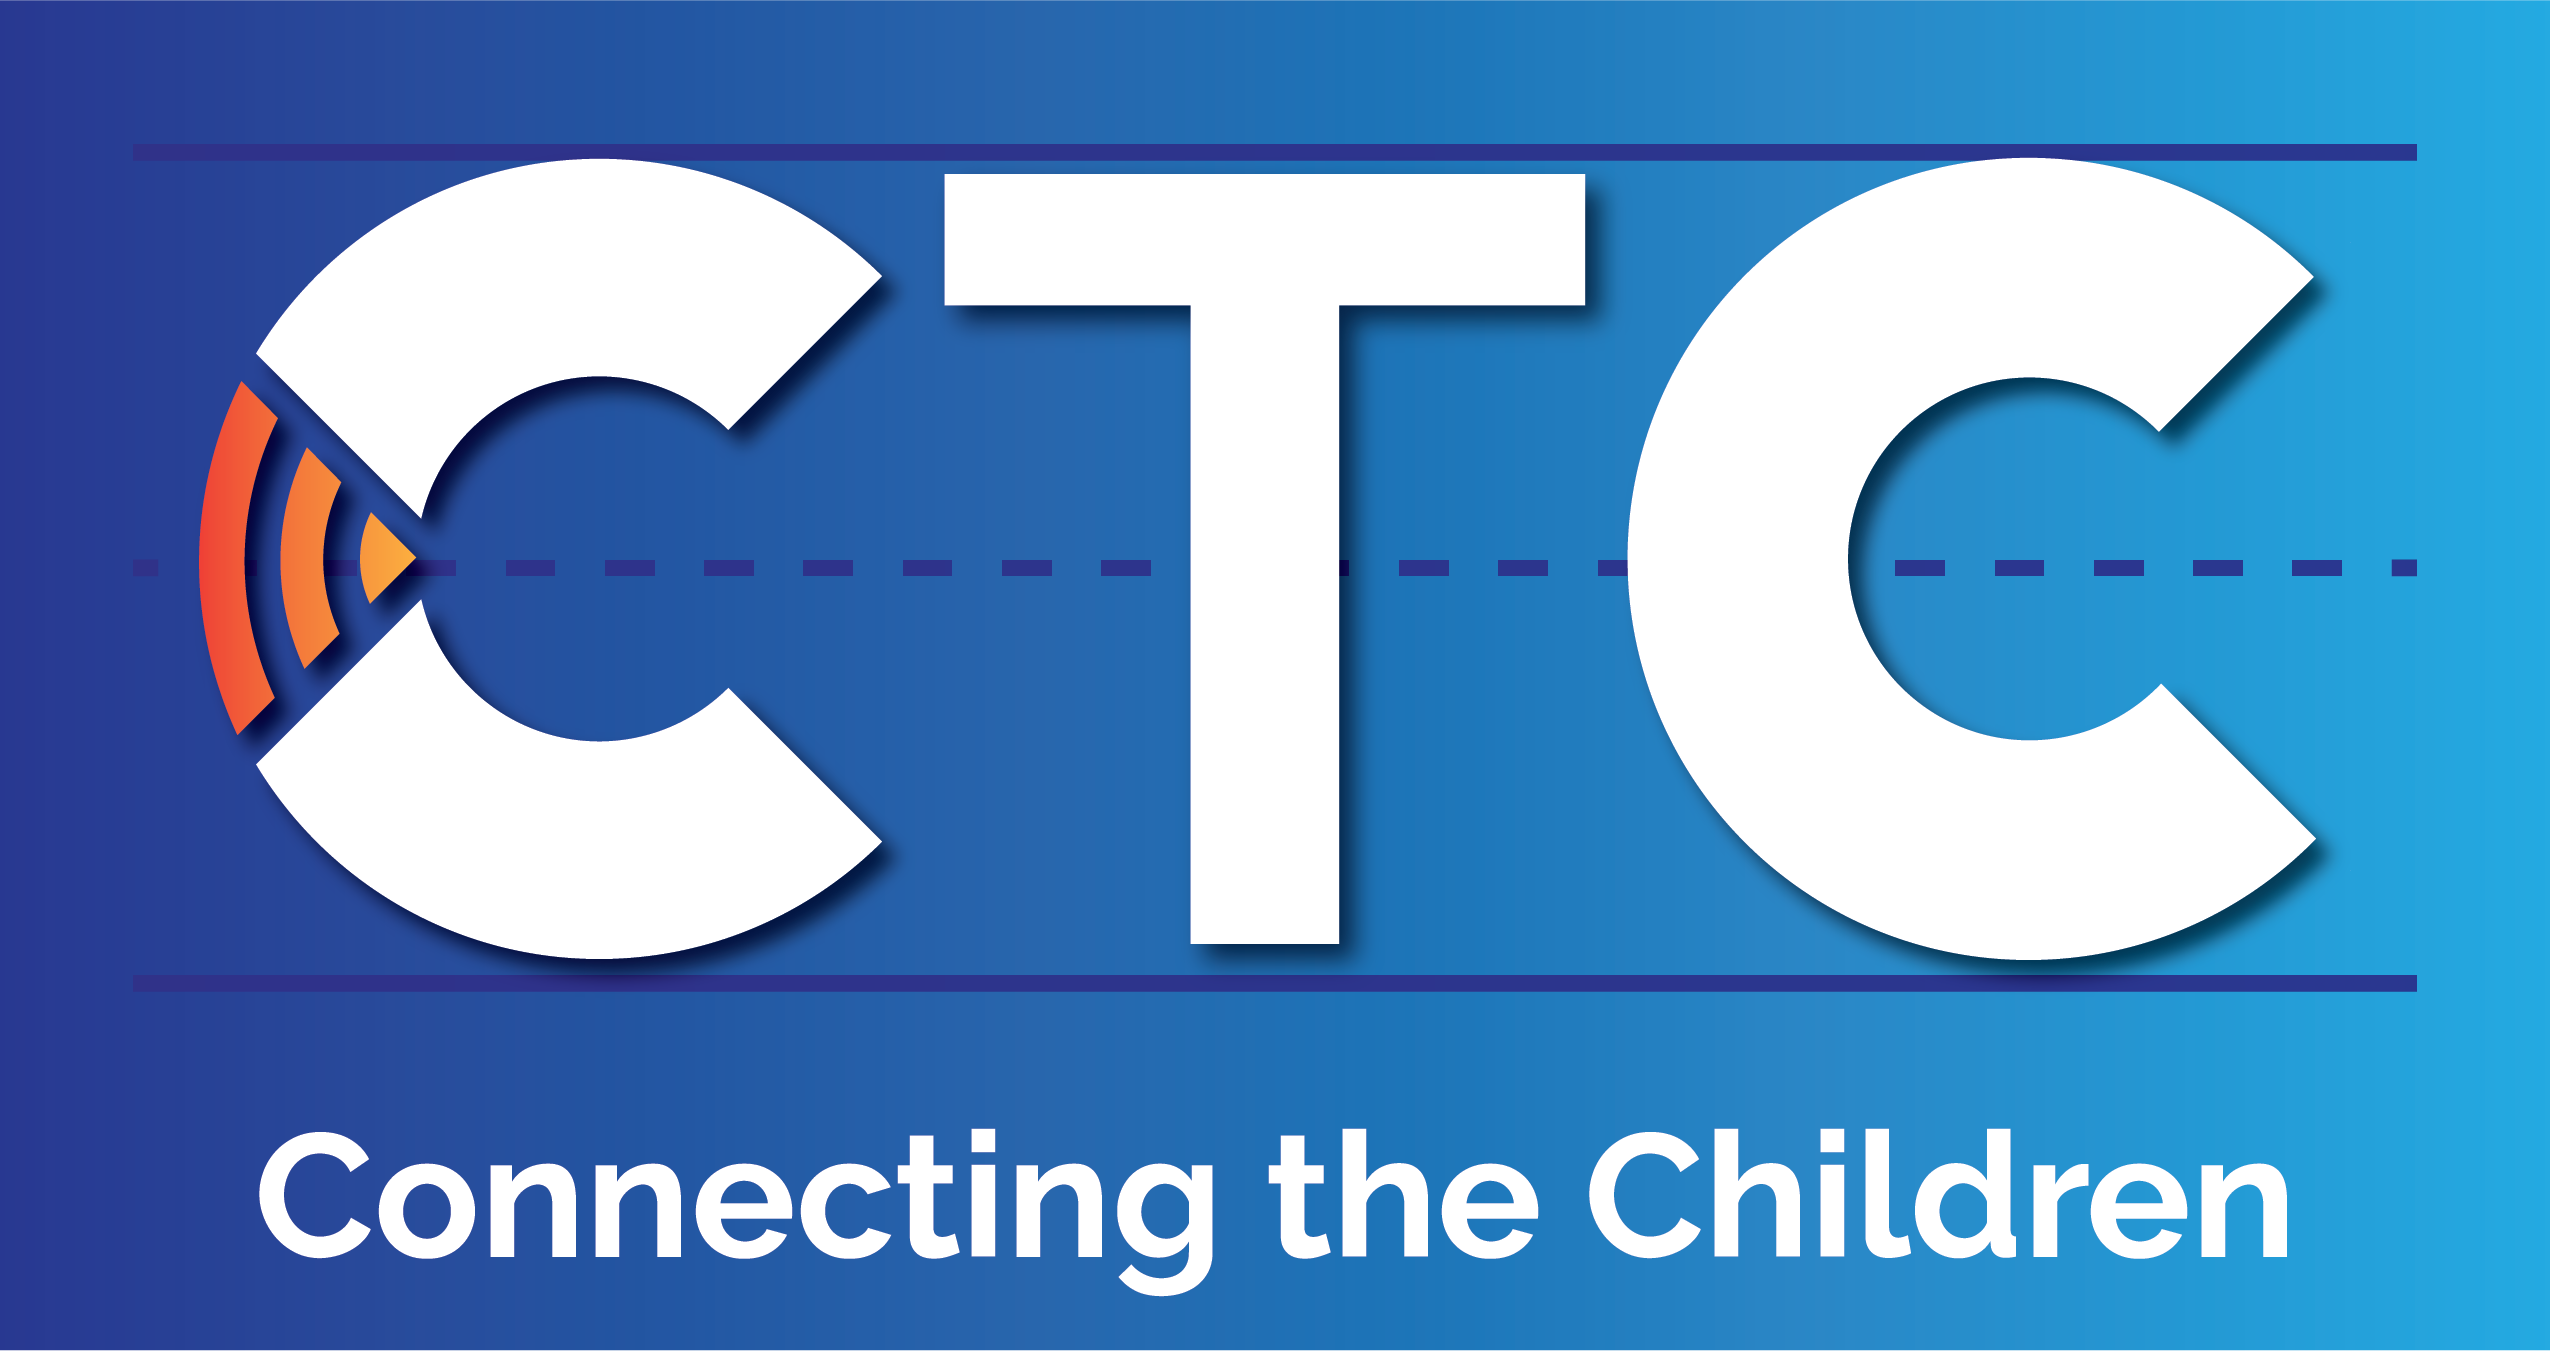 Connecting the Children logo